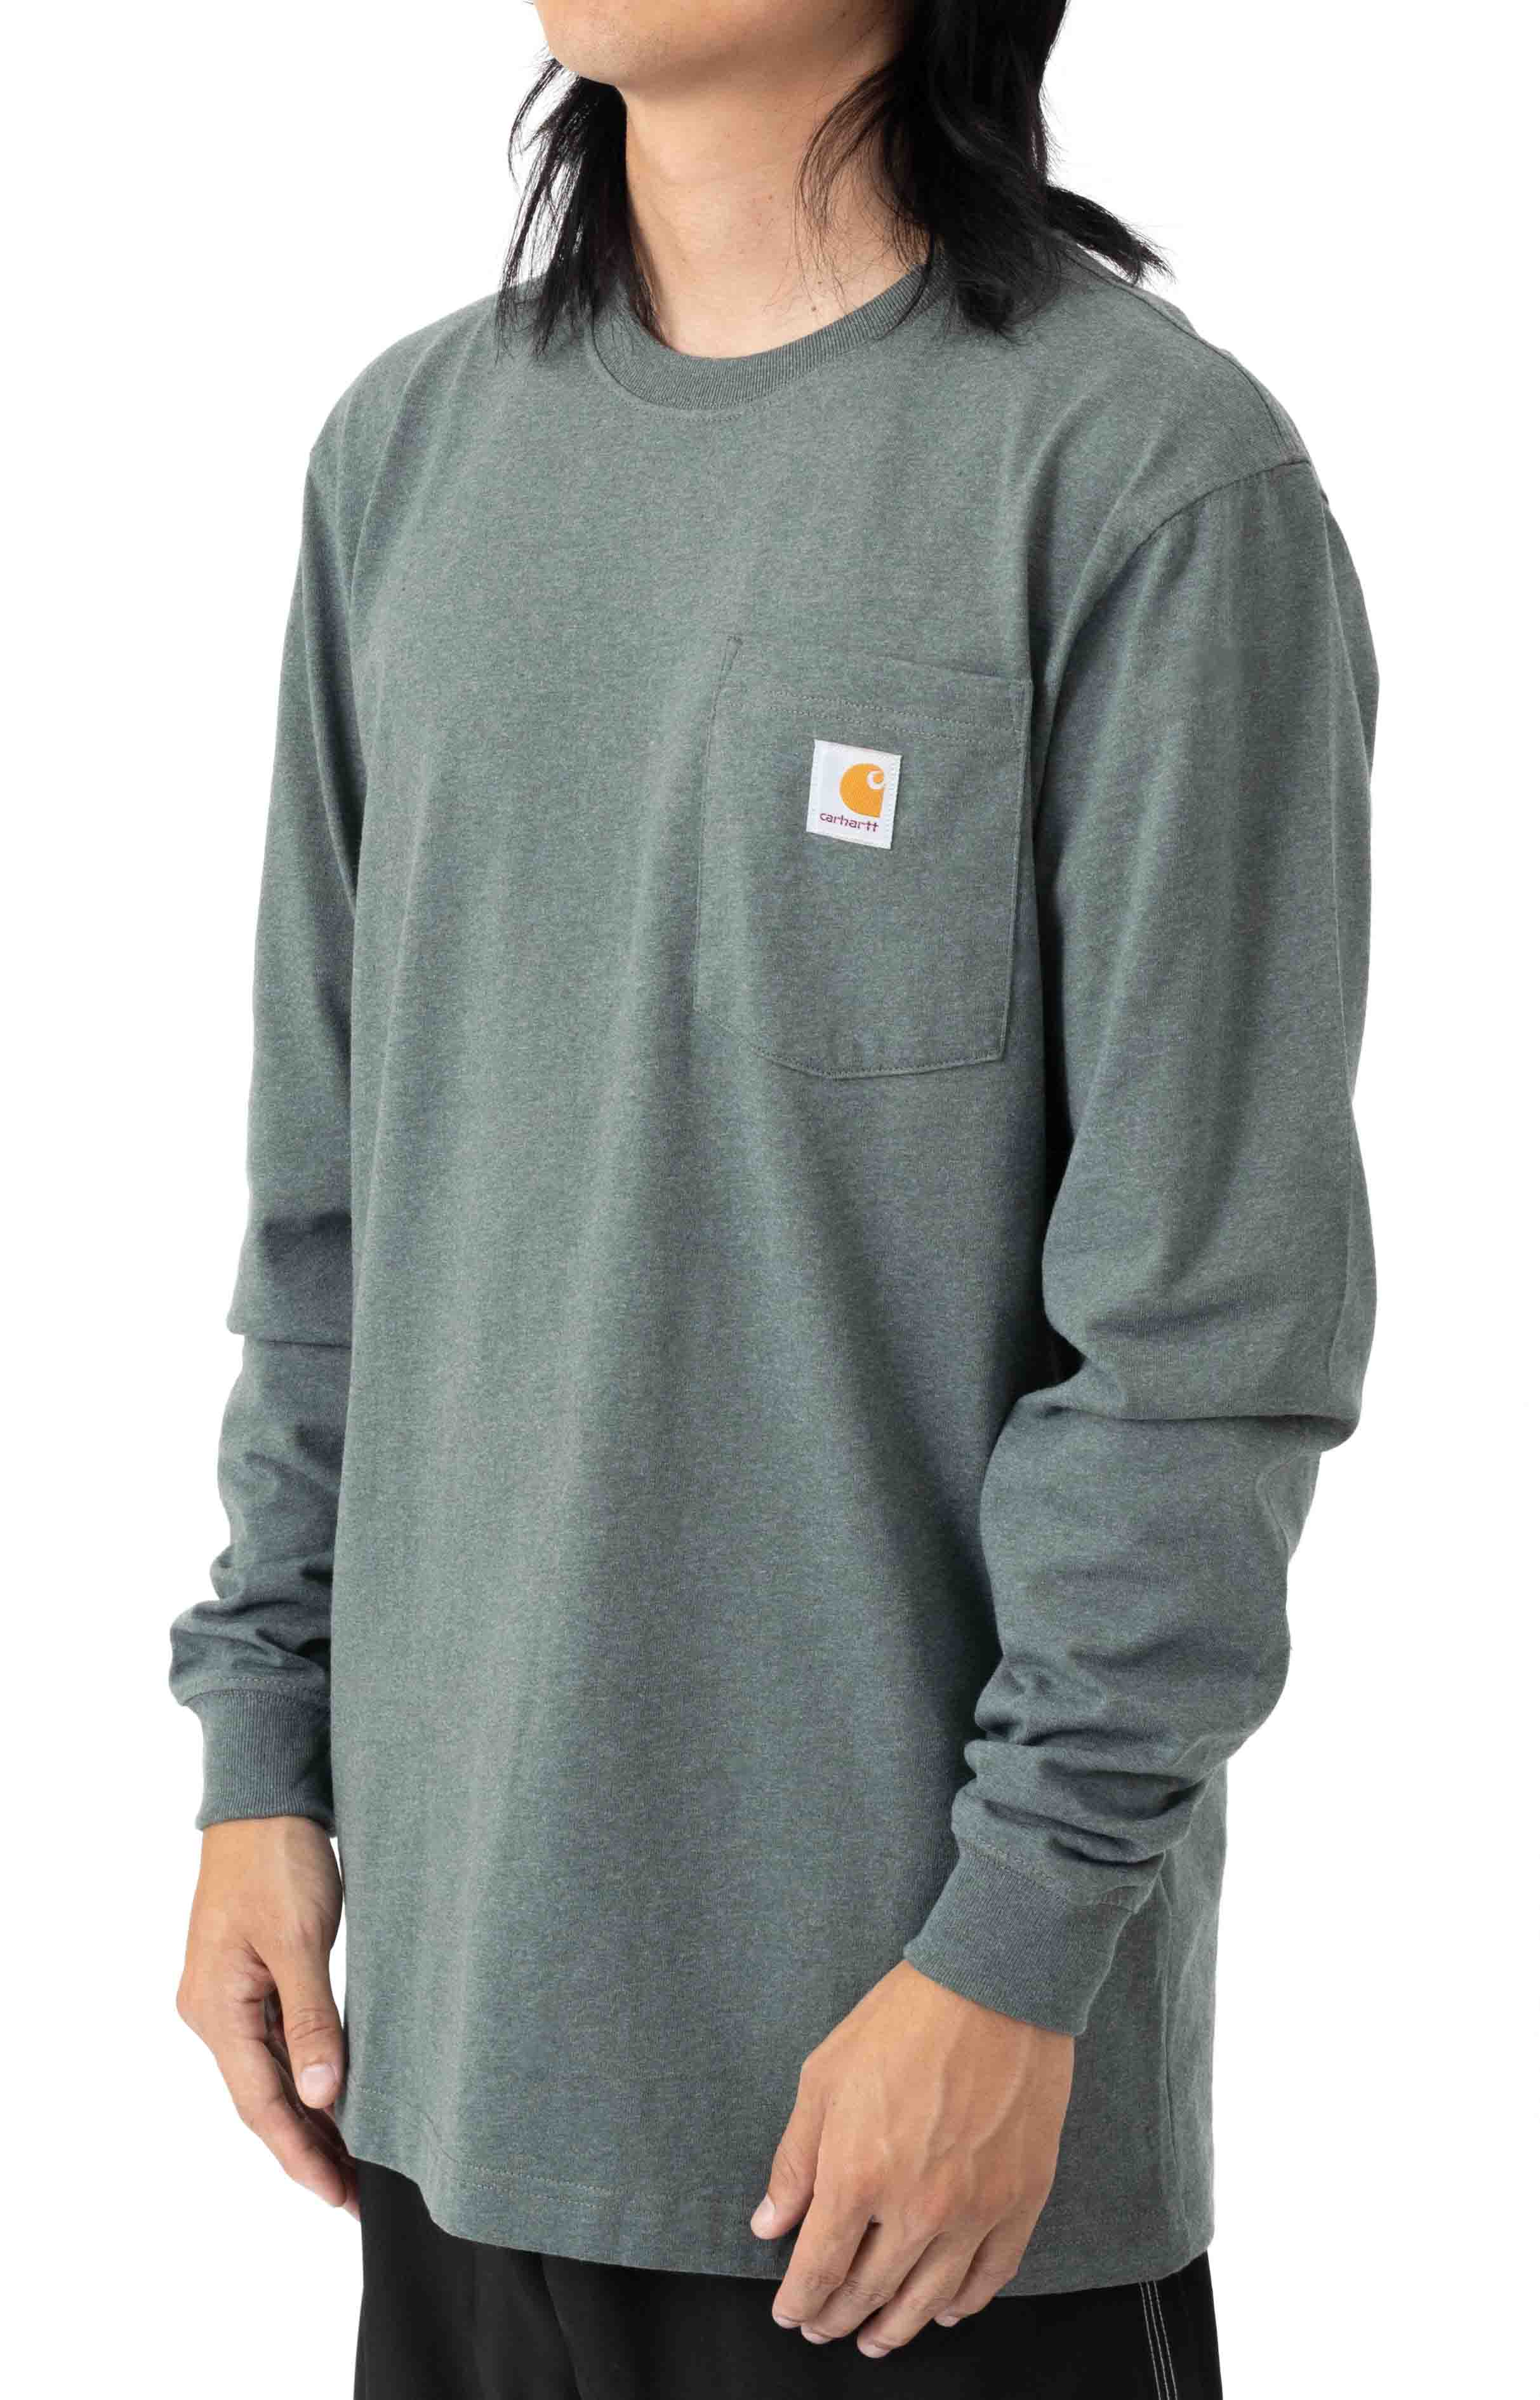 (104889) Loose Fit Heavyweight L/S Pocket Flag Graphic T-Shirt - Elm Heather  3